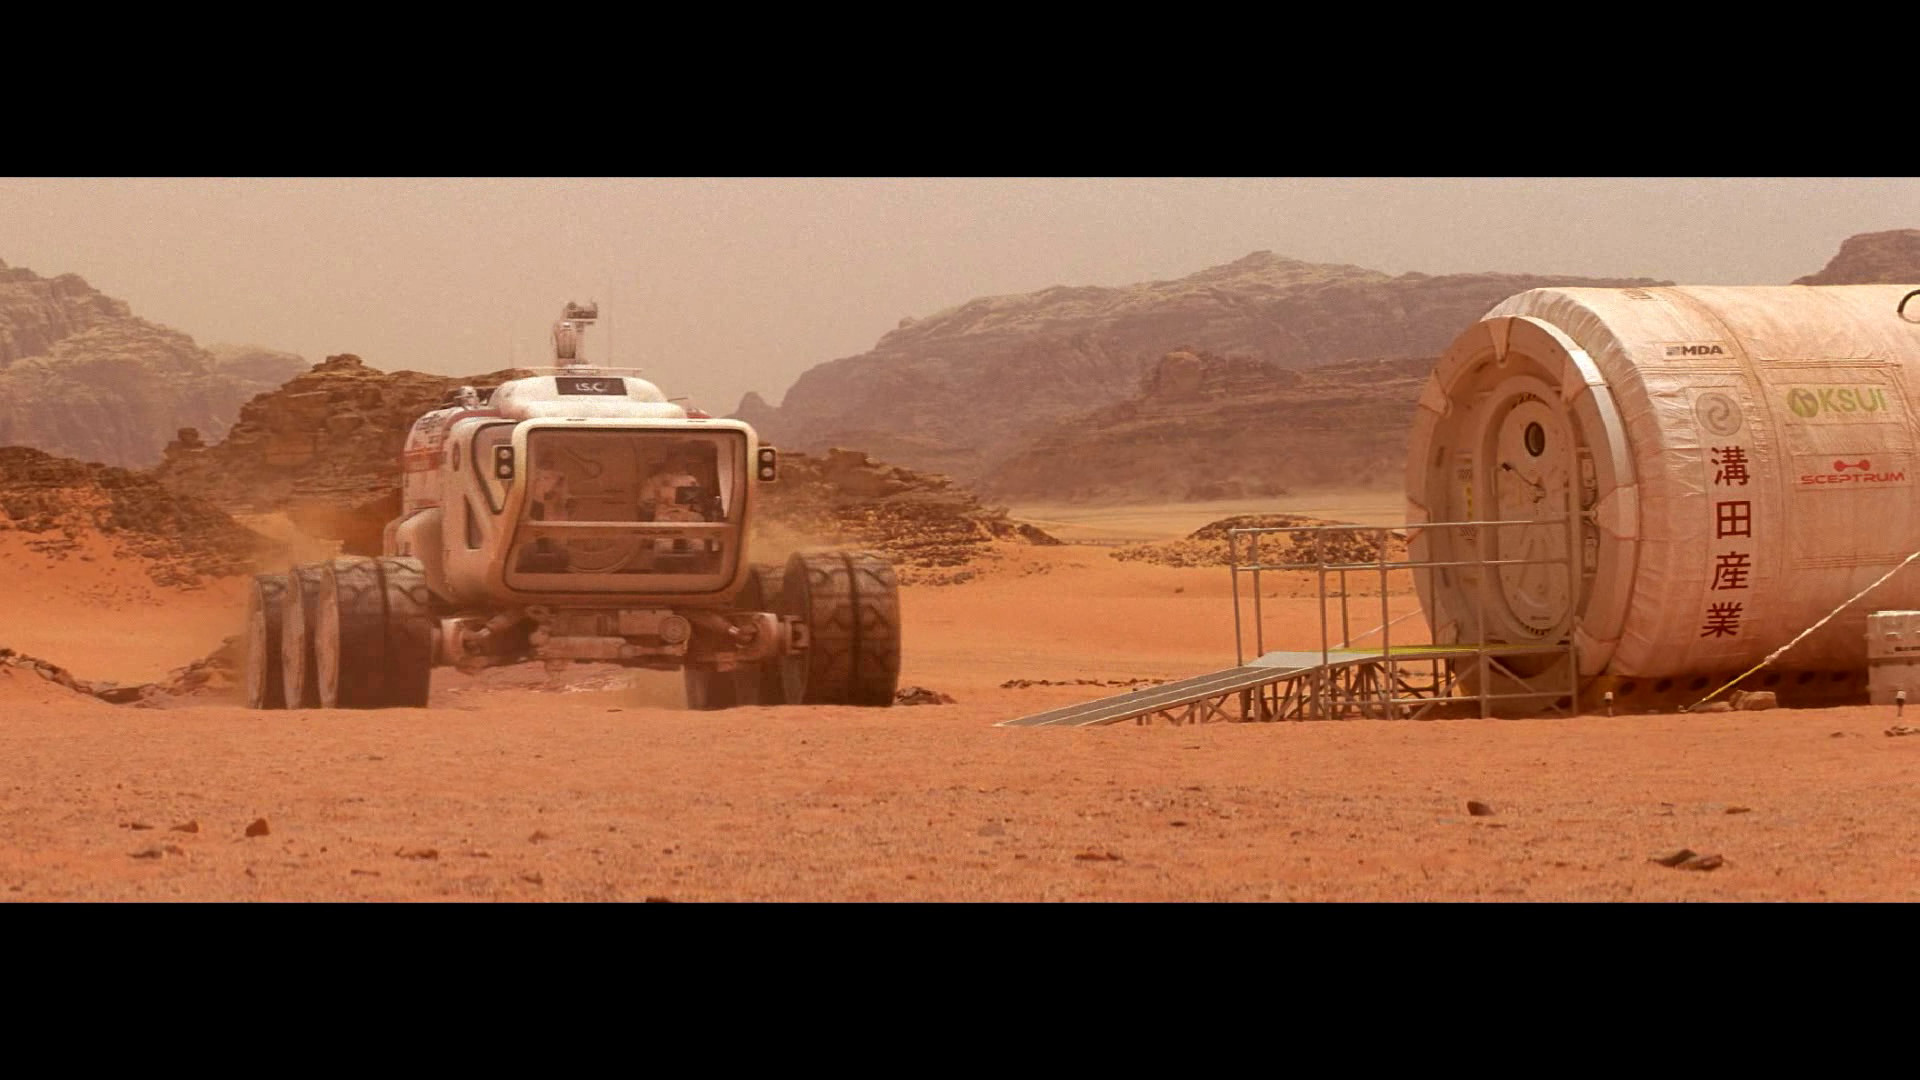 Last days on mars